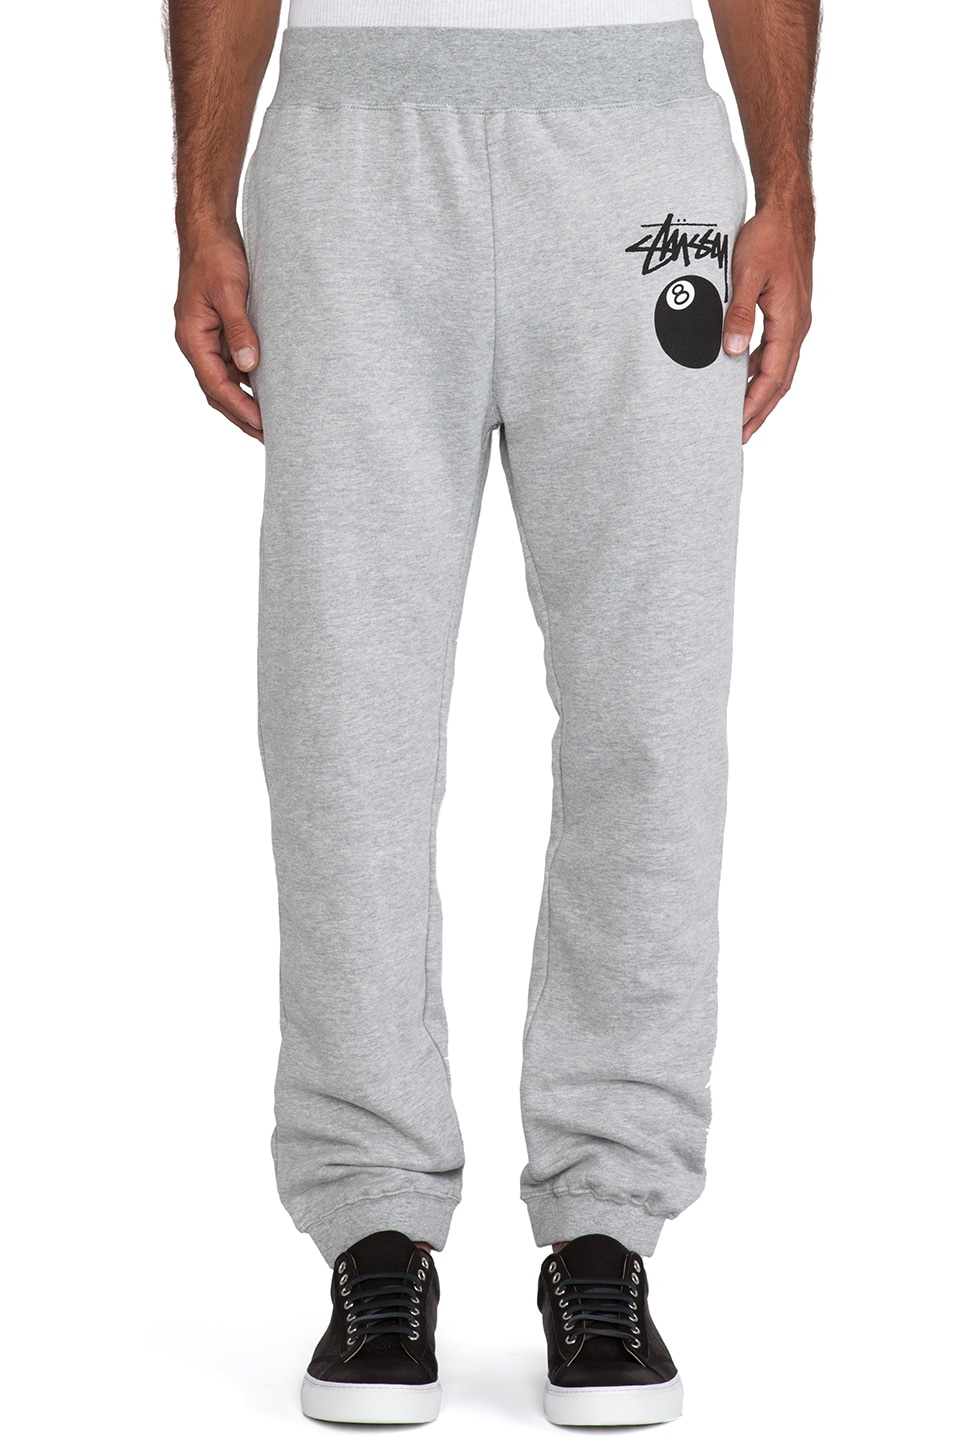 Stussy 8 Ball Sweatpant in Grey Heather